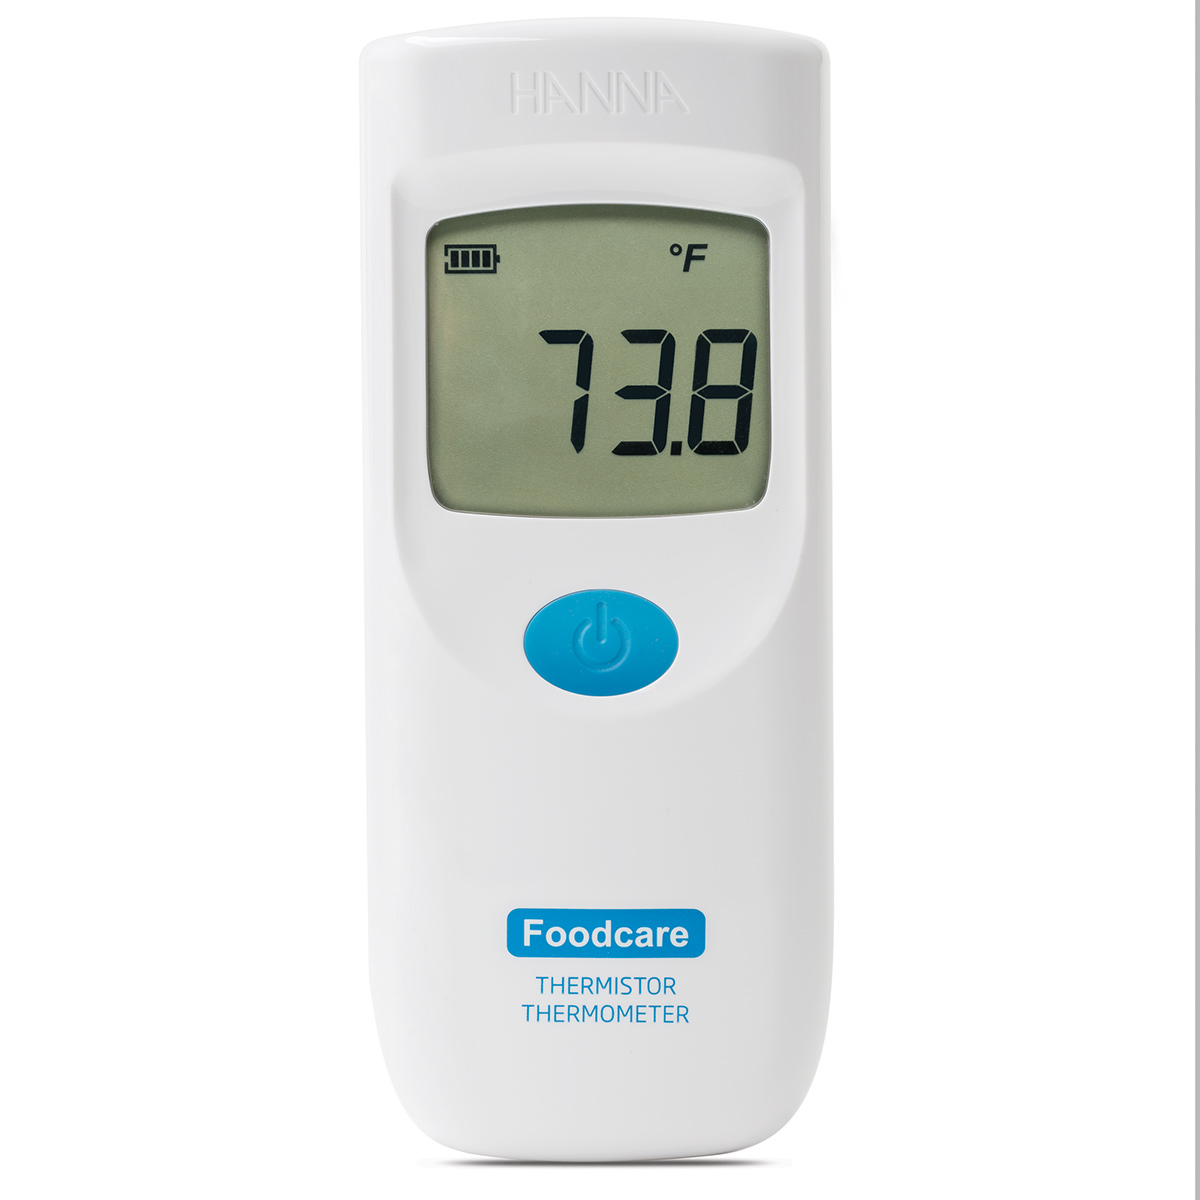 Foodcare Thermistor Thermometer - HI93501